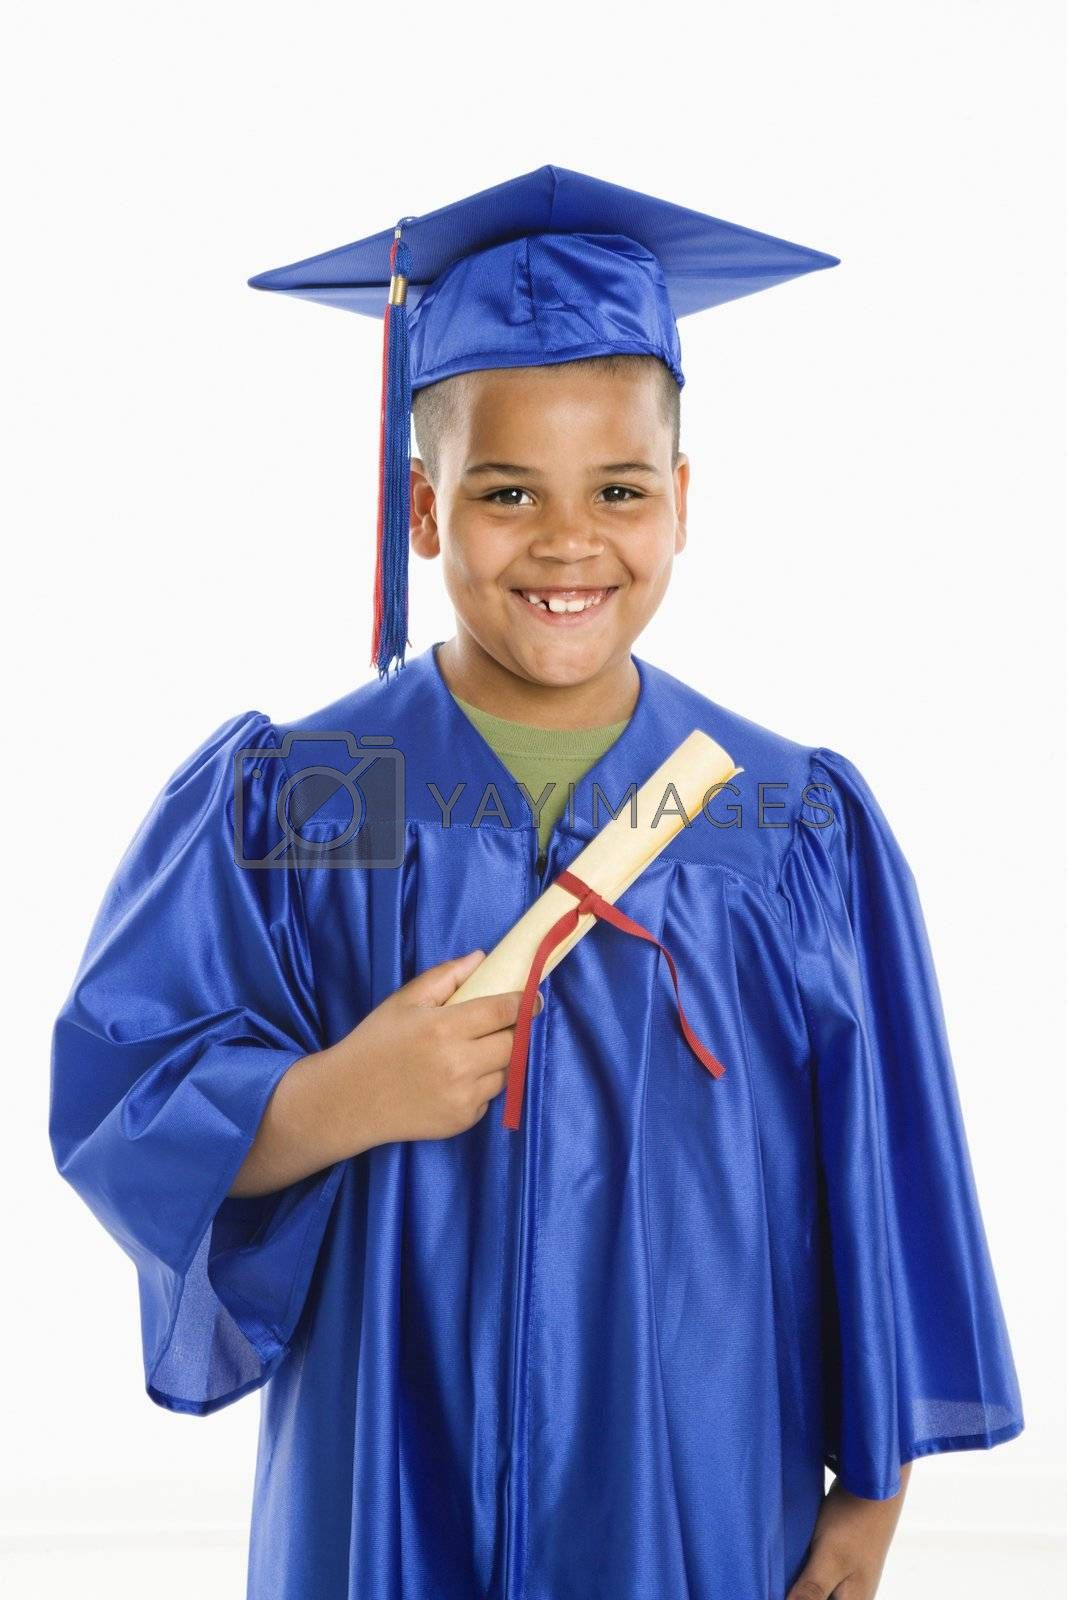 Young boy wearing blue graduation gown holding diploma.